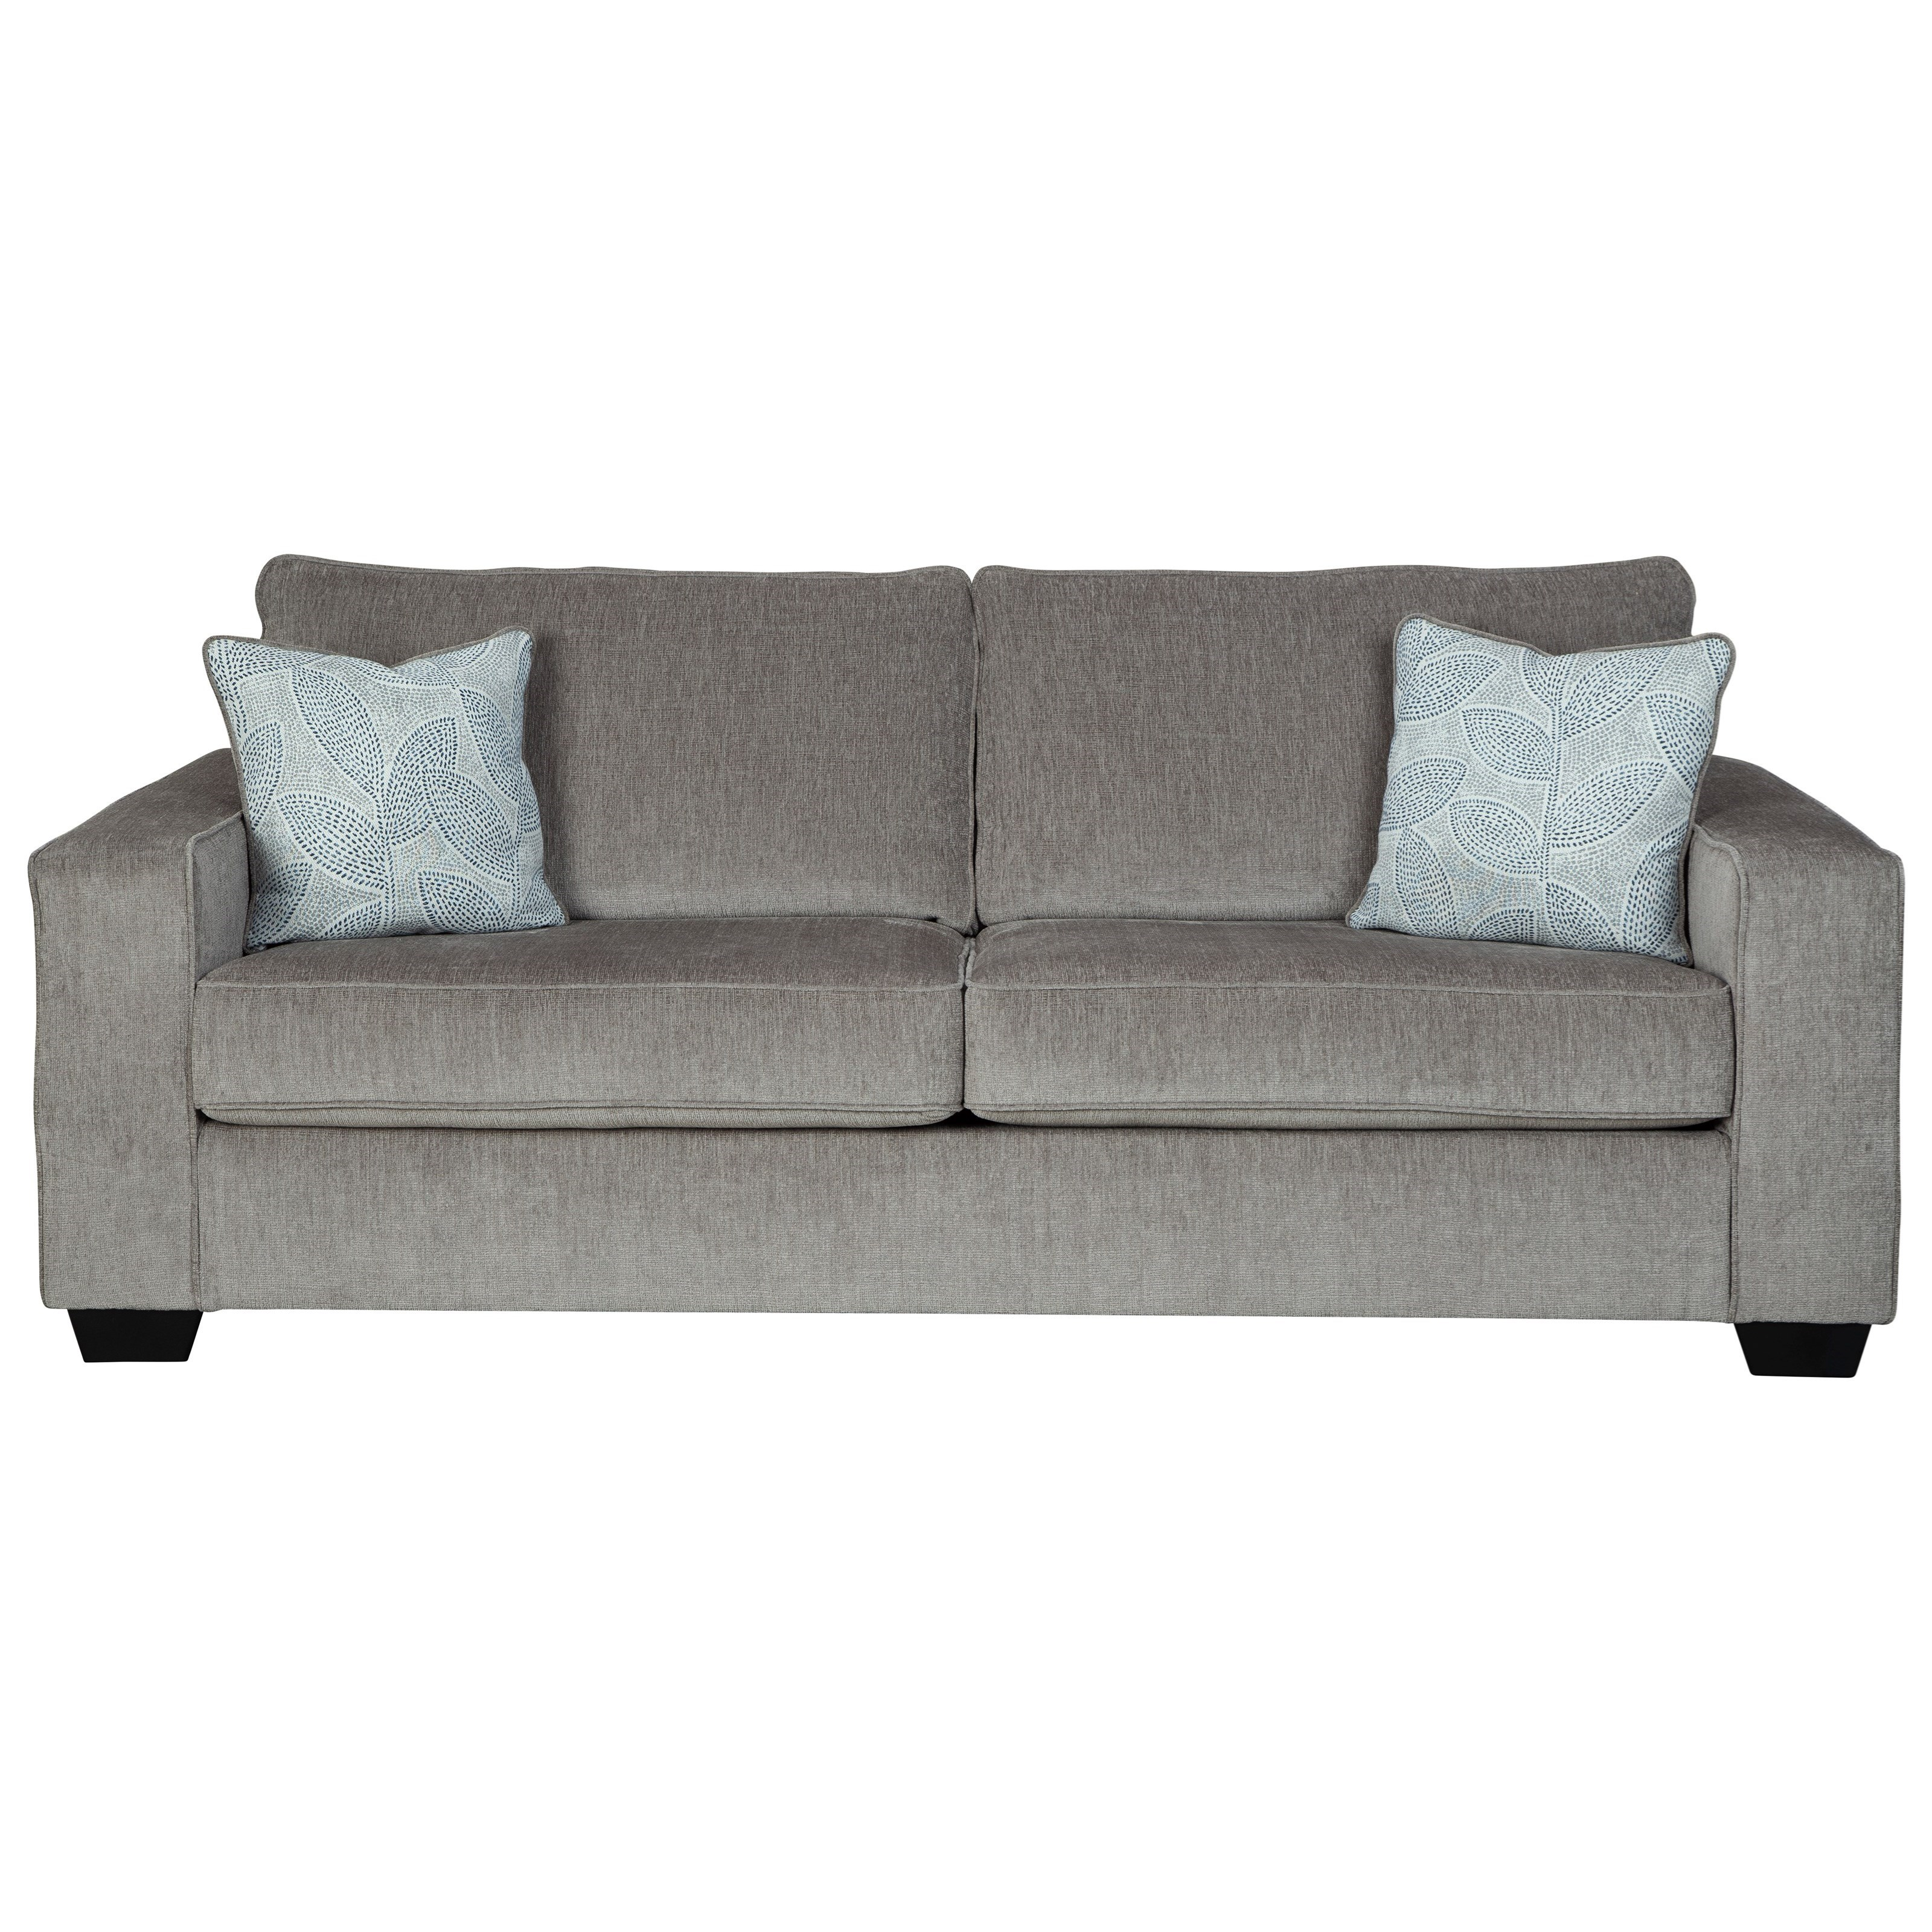 Altari Sofa by Signature Design by Ashley at Catalog Outlet